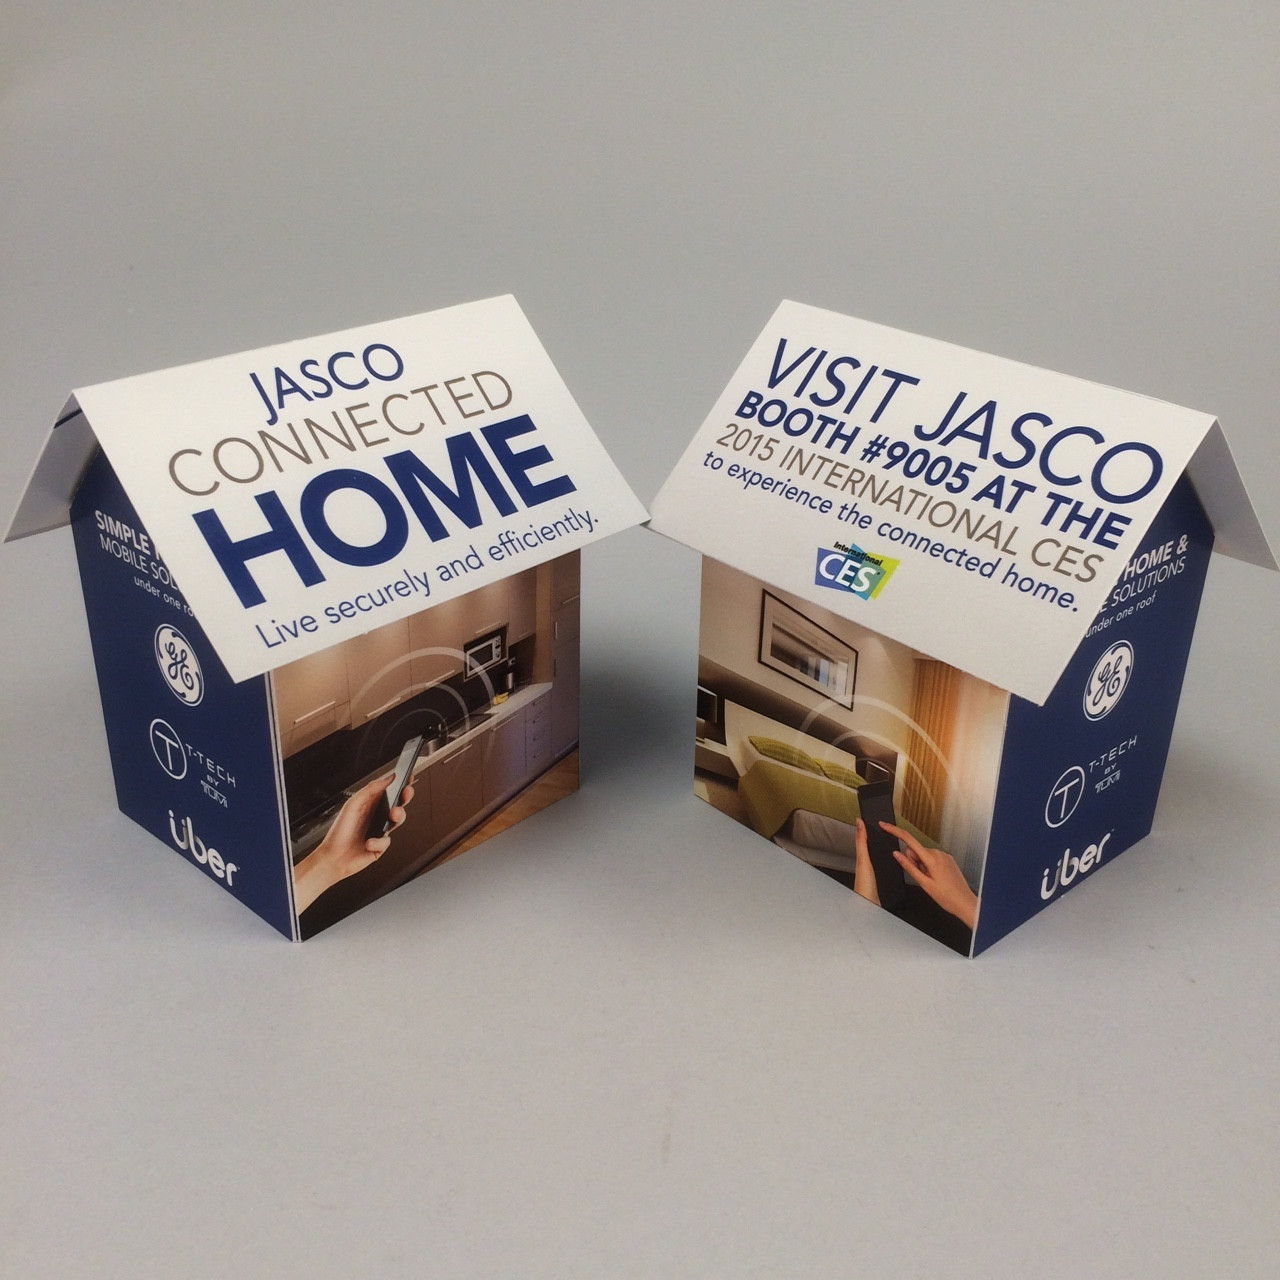 Jasco Uses Pop-Up House to Connect with Attendees